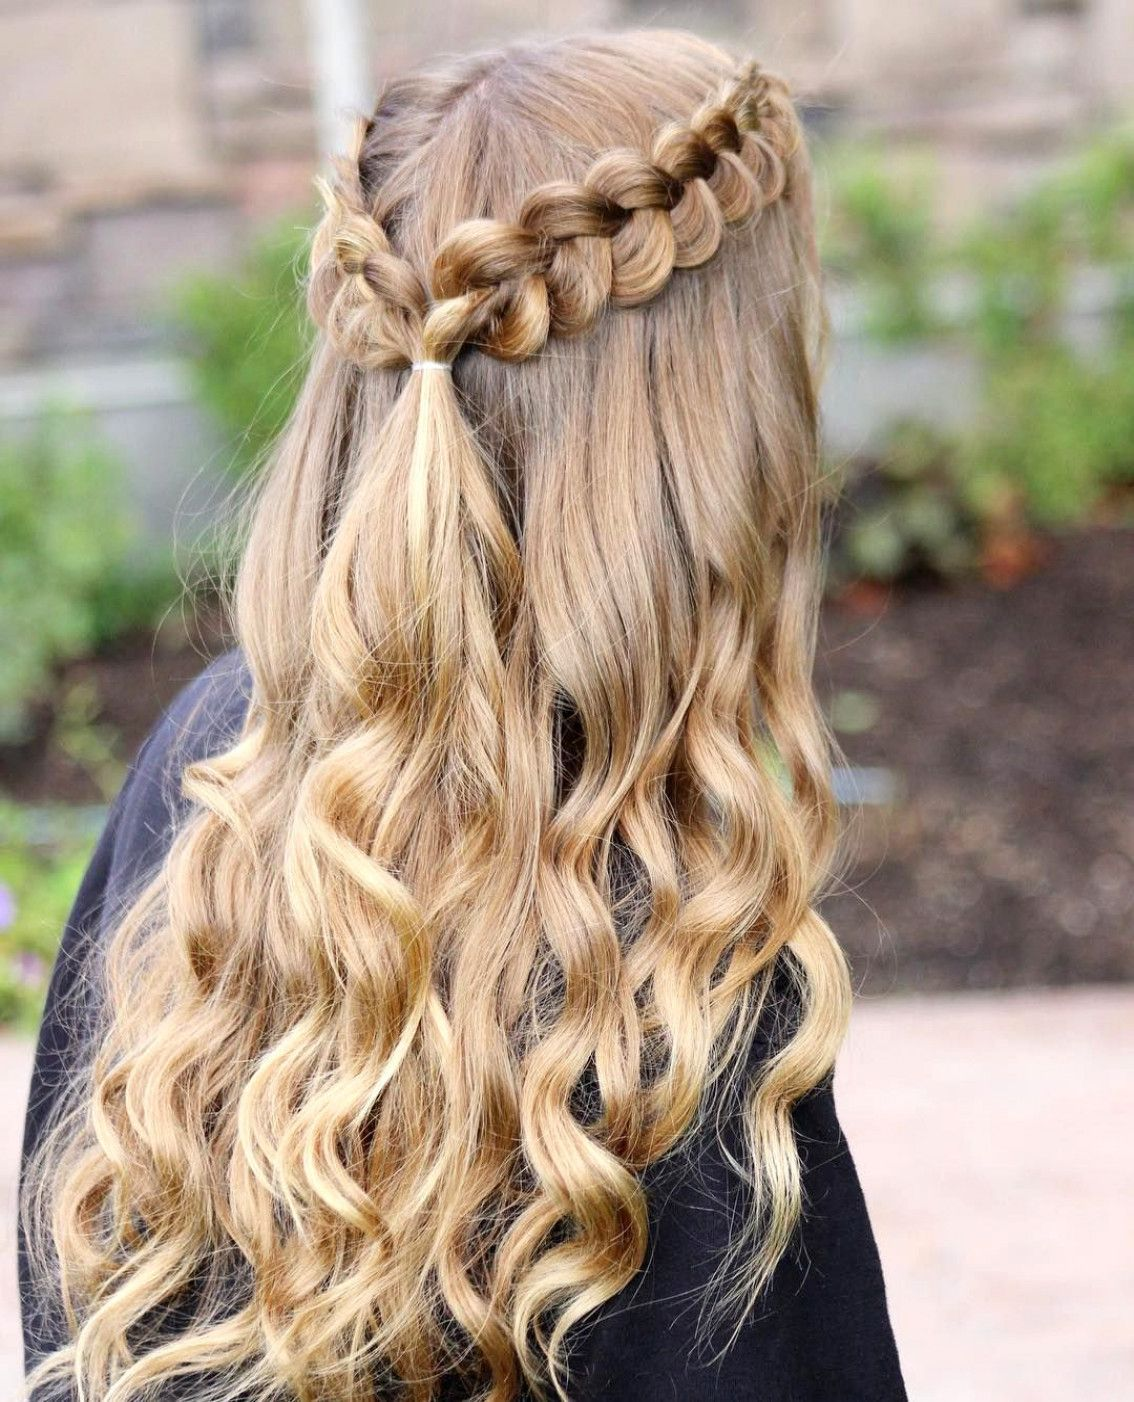 Homecoming Hairstyles For Long Hair 40 Diverse Homecoming Hairstyles For Short Medium And Long Hair In 2020 Simple Prom Hair Prom Hairstyles For Long Hair Dance Hairstyles